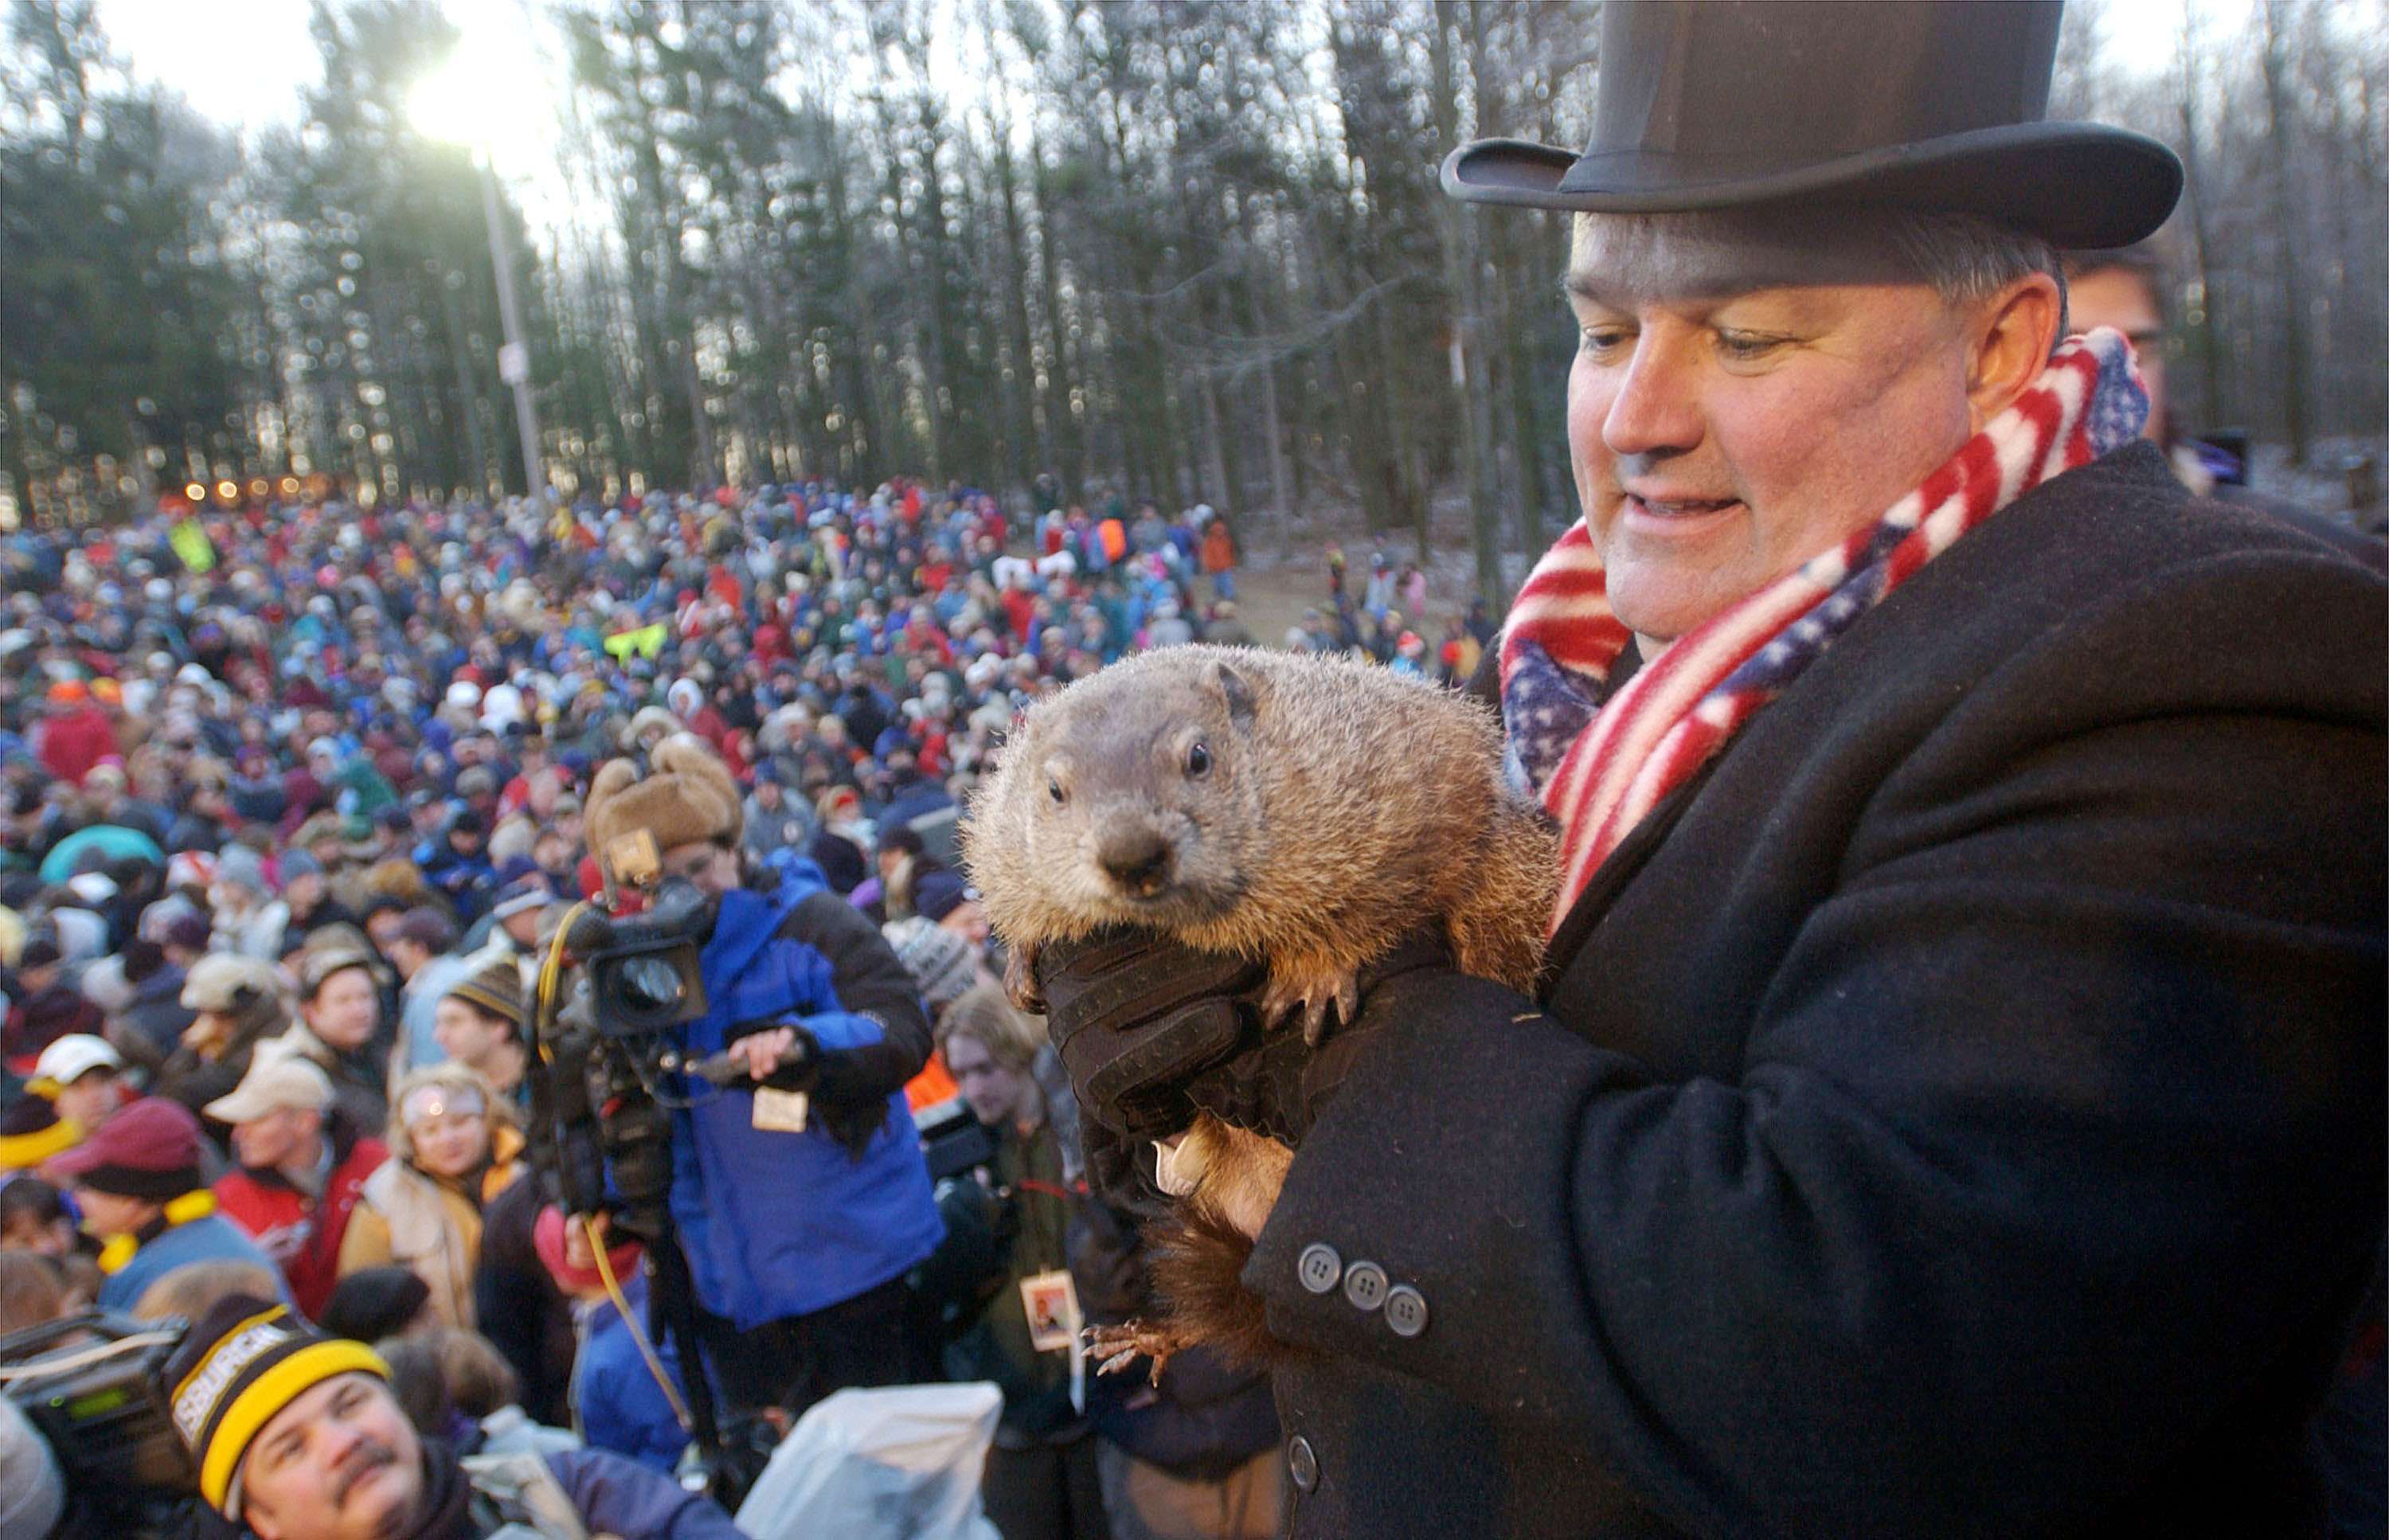 Groundhog Day: Punxsutawney Phil sees shadow, six more weeks of winter